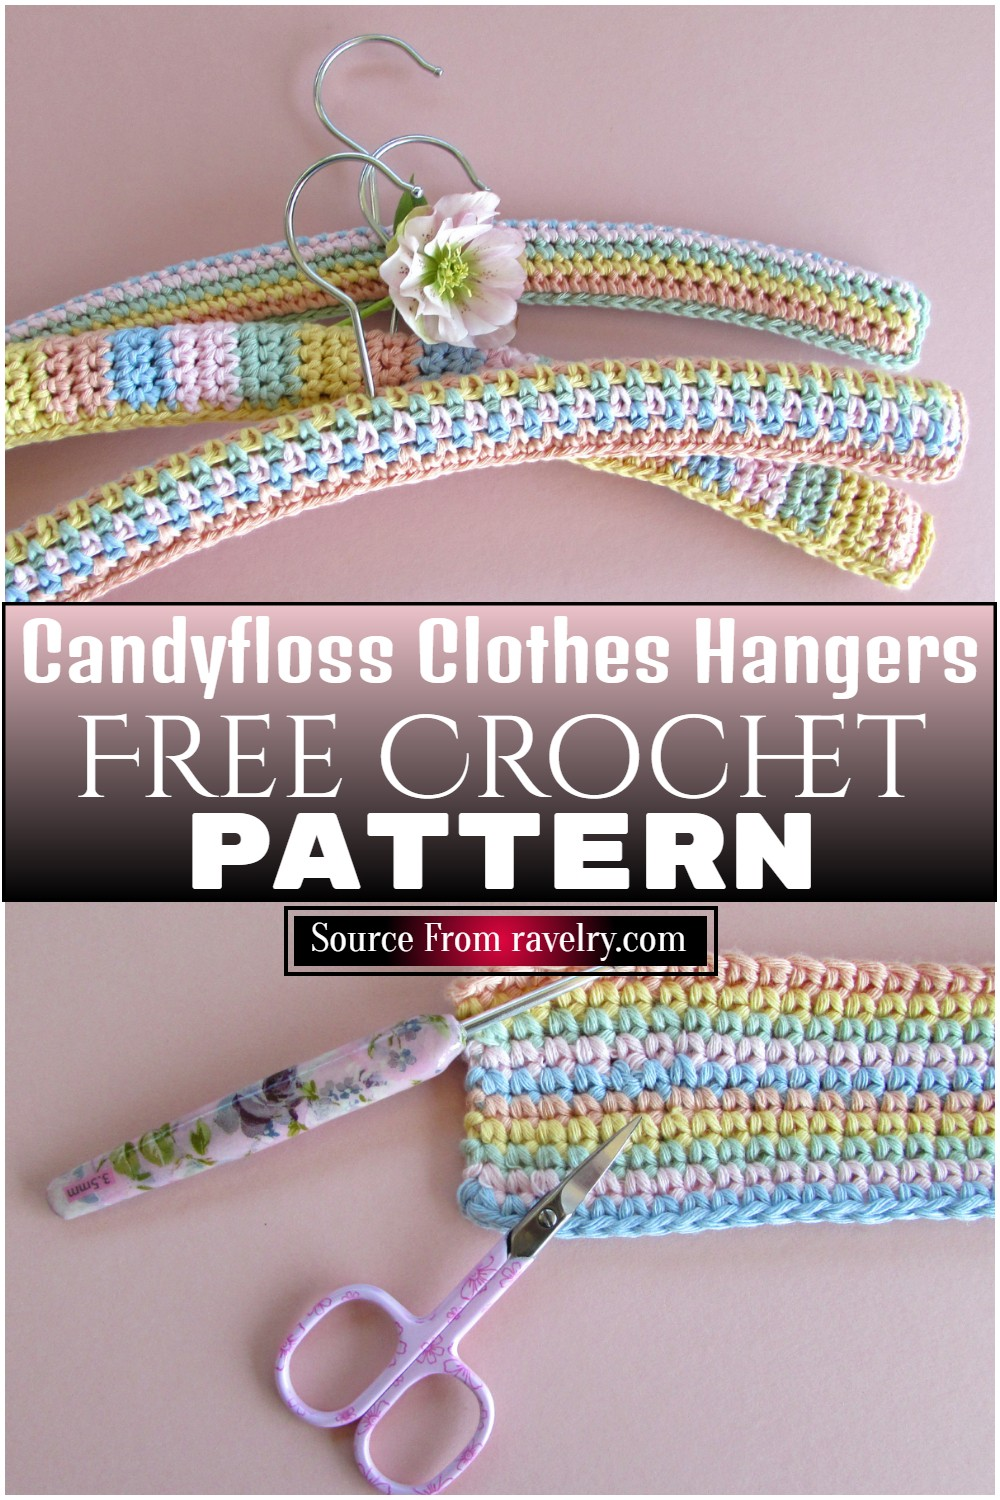 Free Crochet Candyfloss Clothes Hangers Pattern